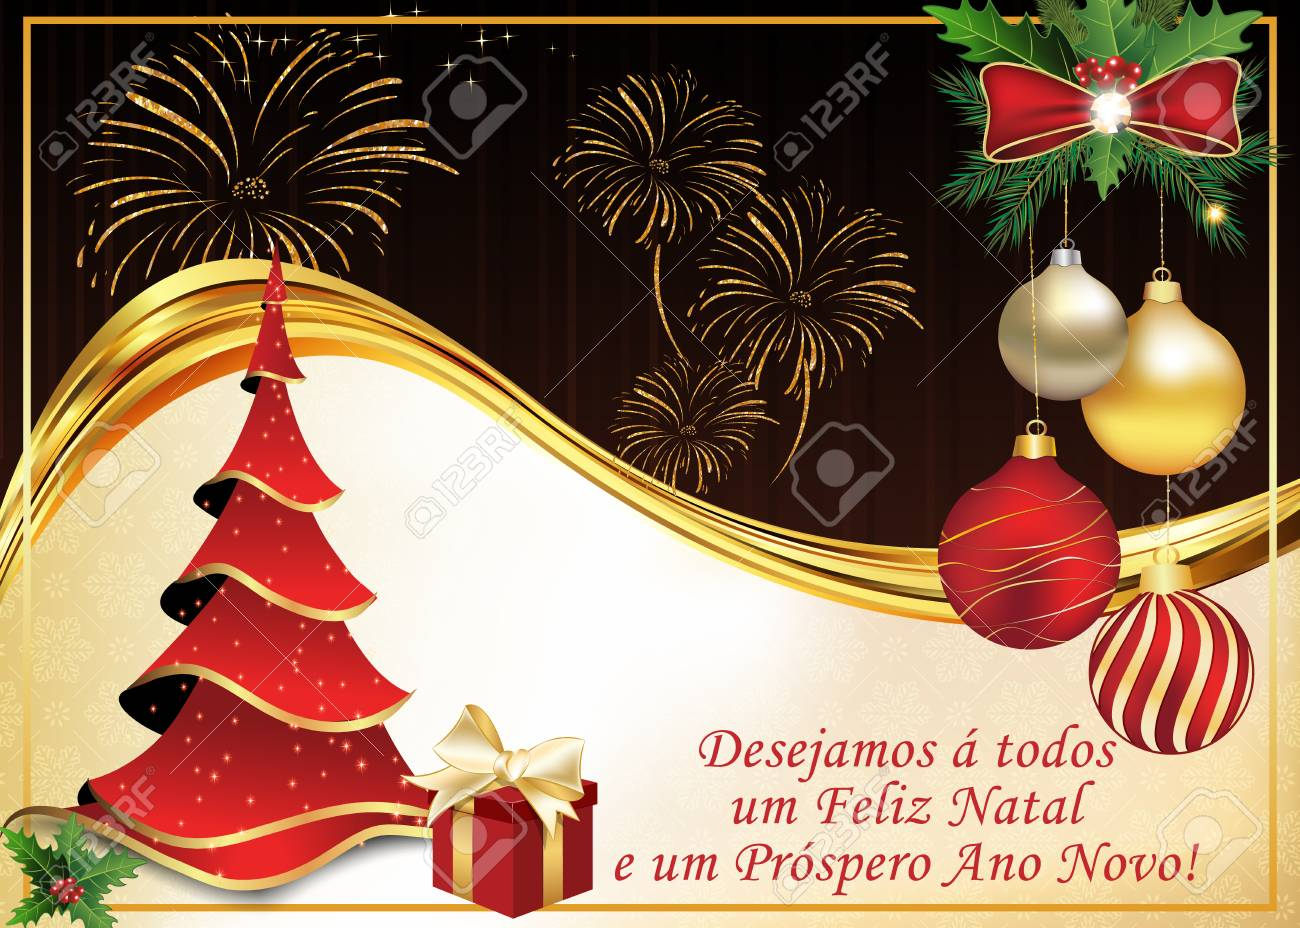 Wishing You All Merry Christmas And A Happy New Year Portuguese